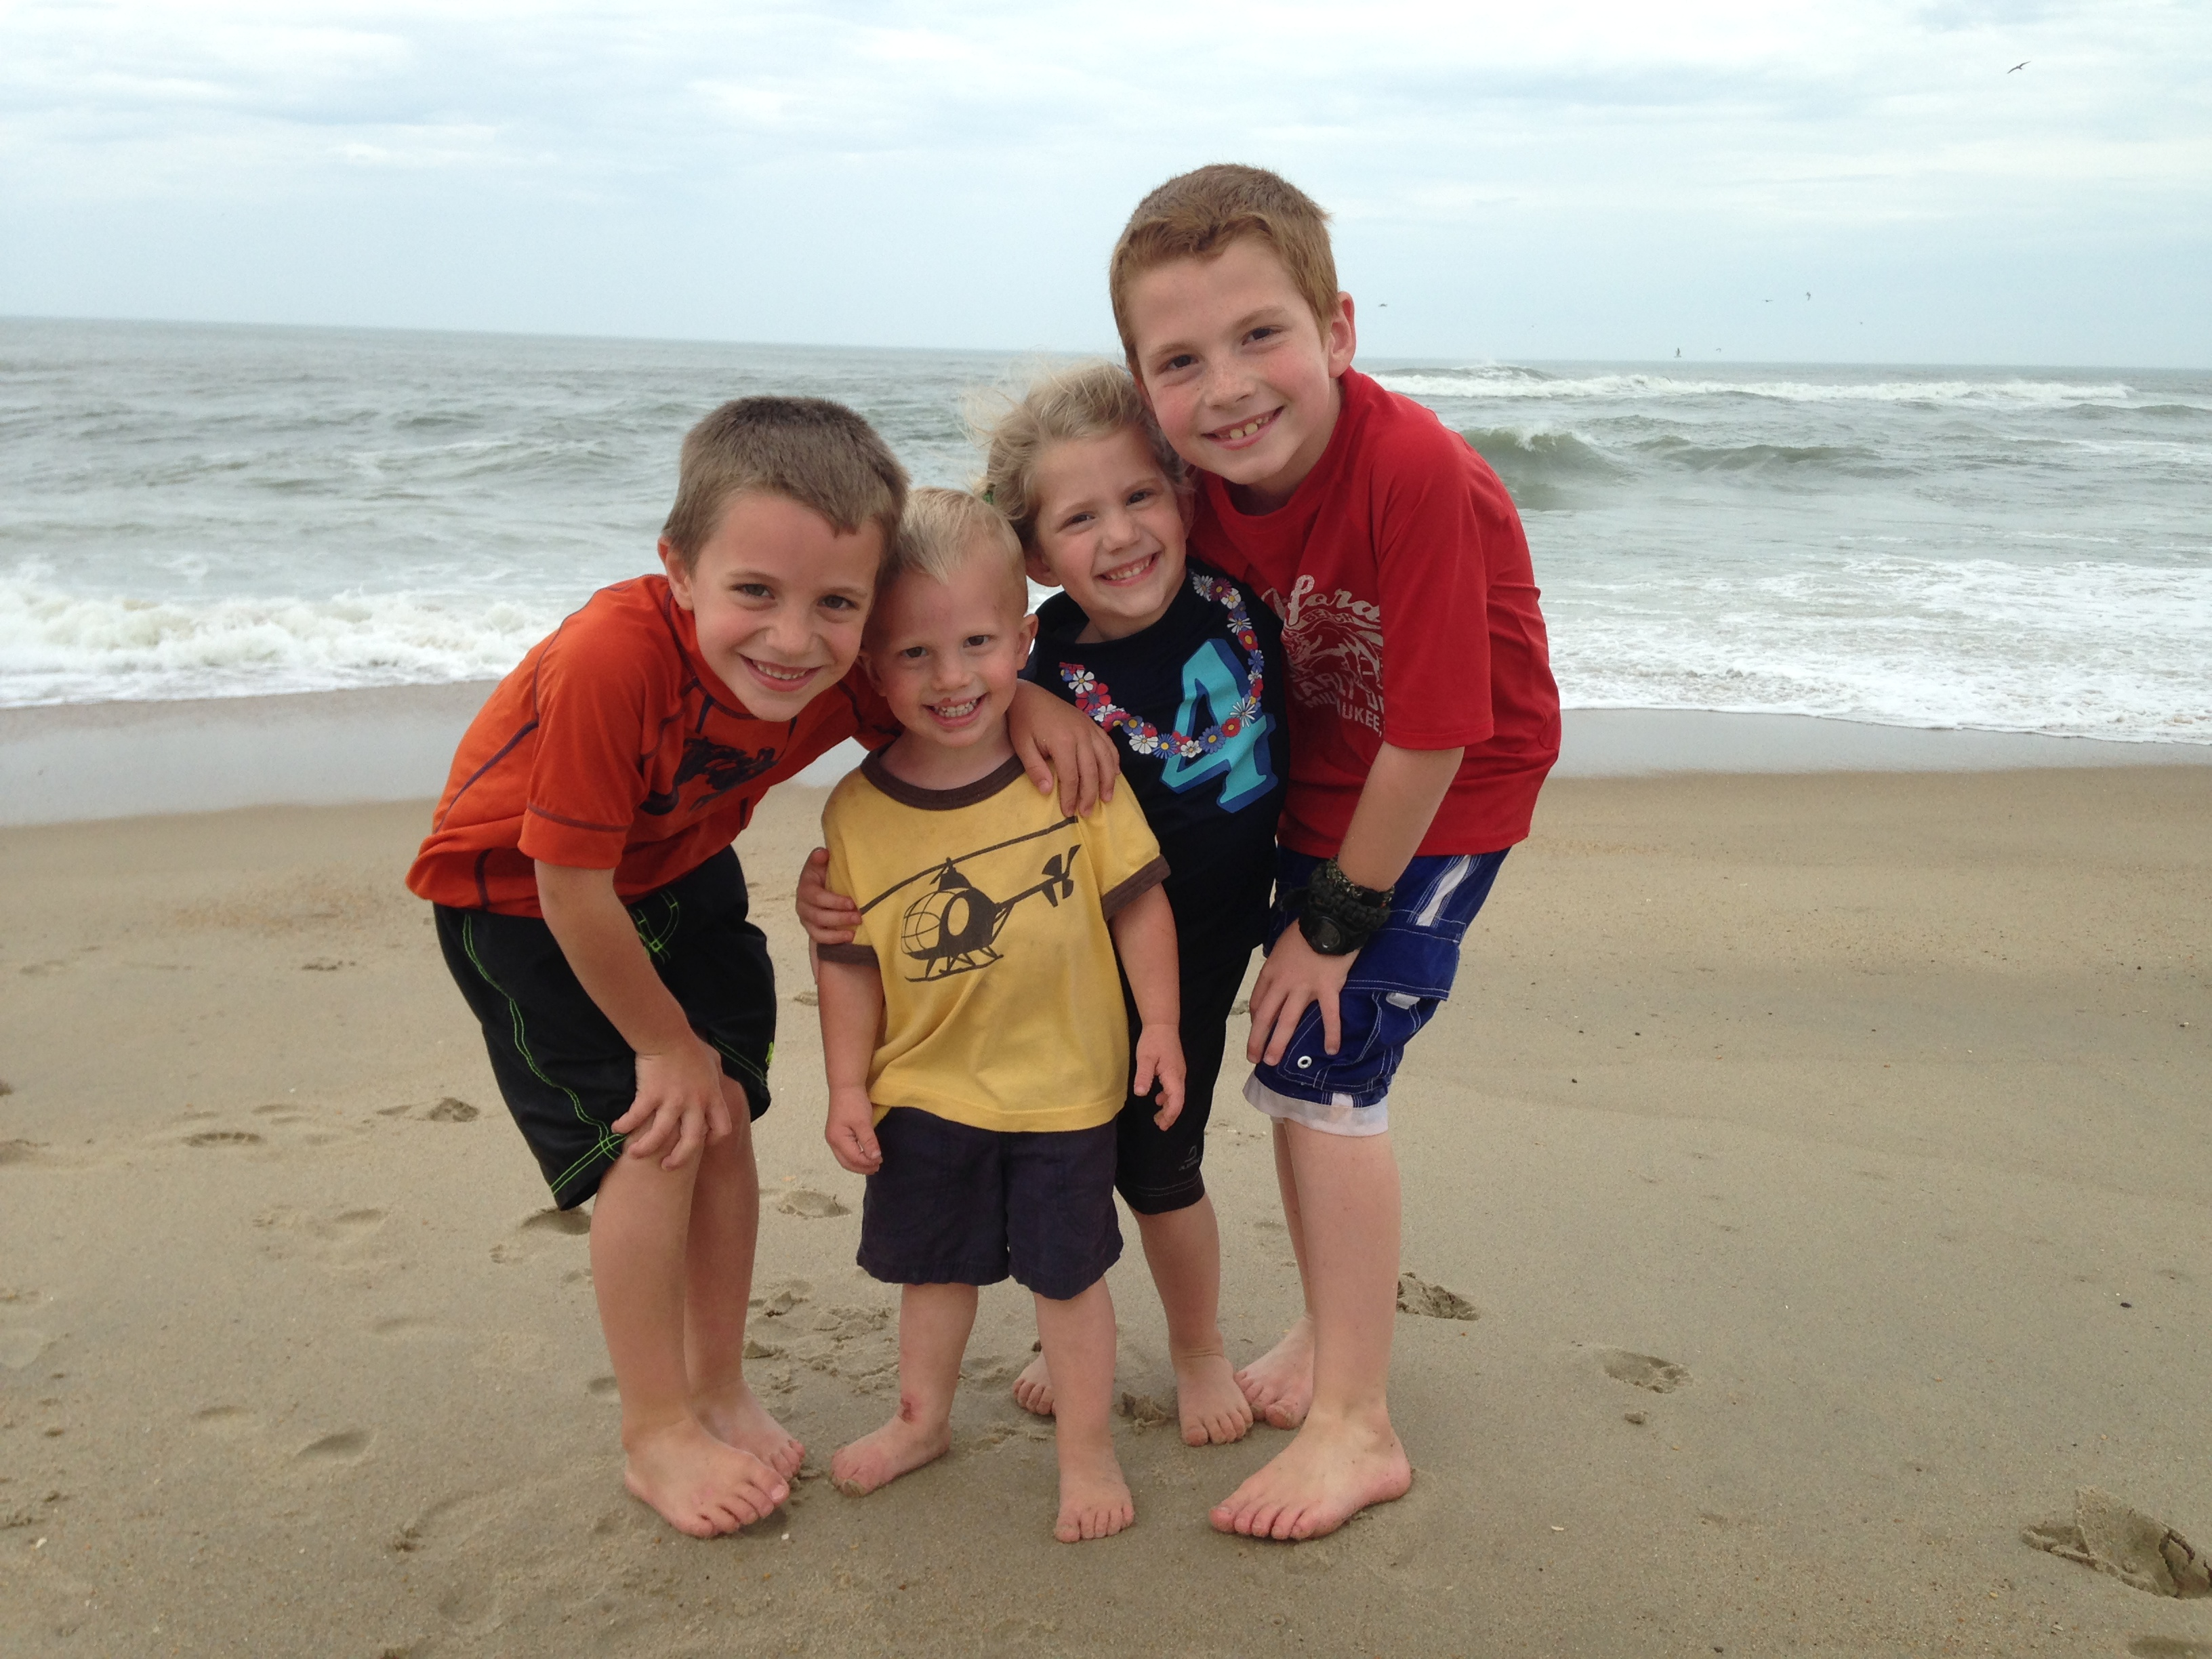 Our 4 beautiful kids!